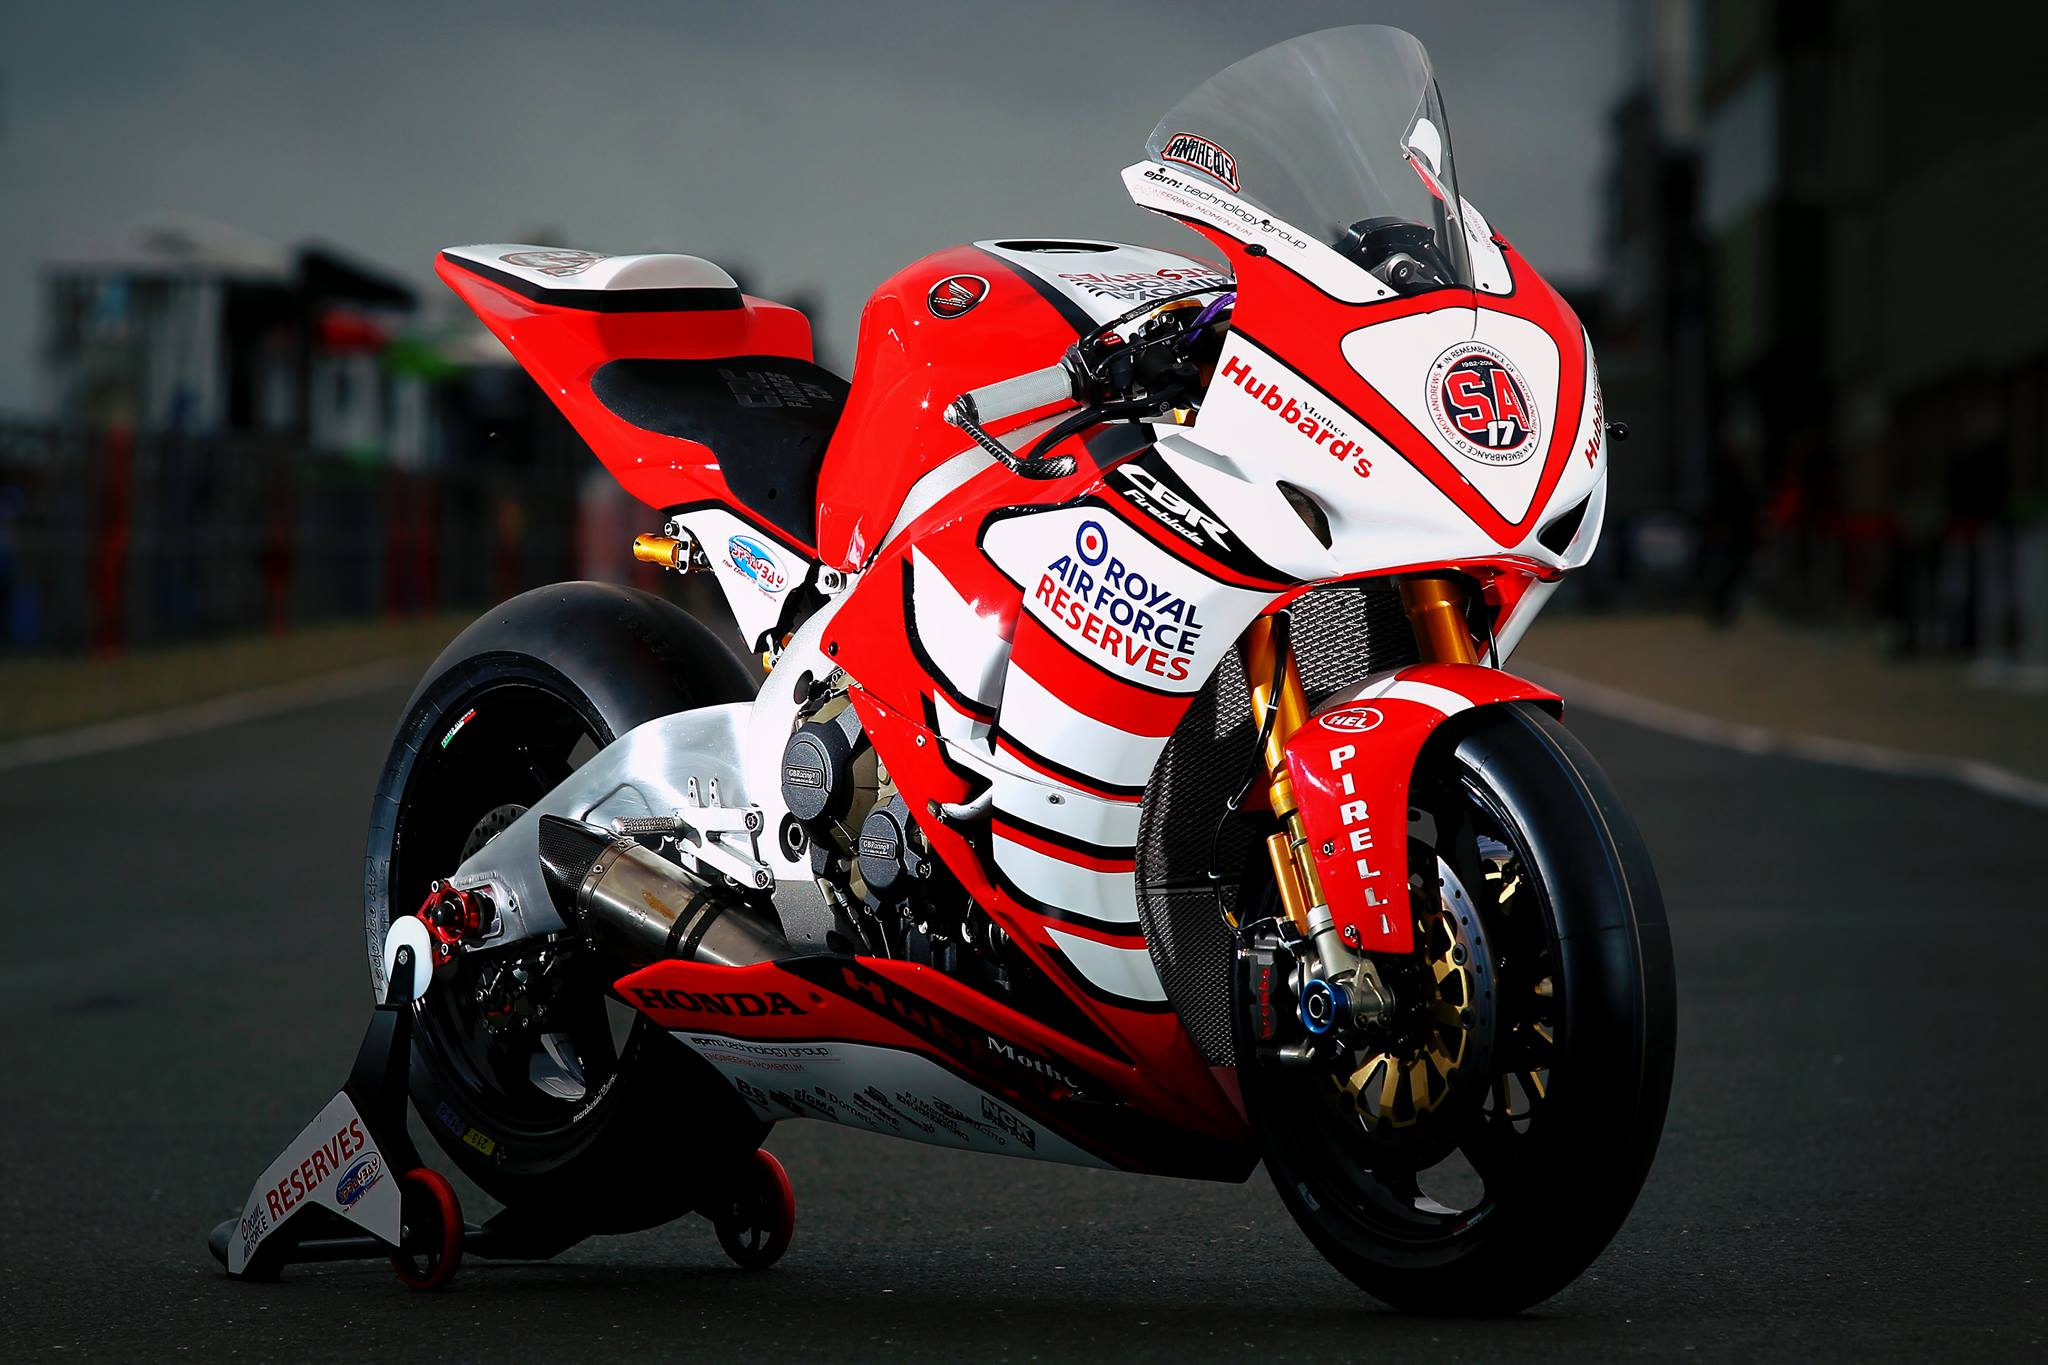 Crc Fairings Image Gallery Official Store With 100 S